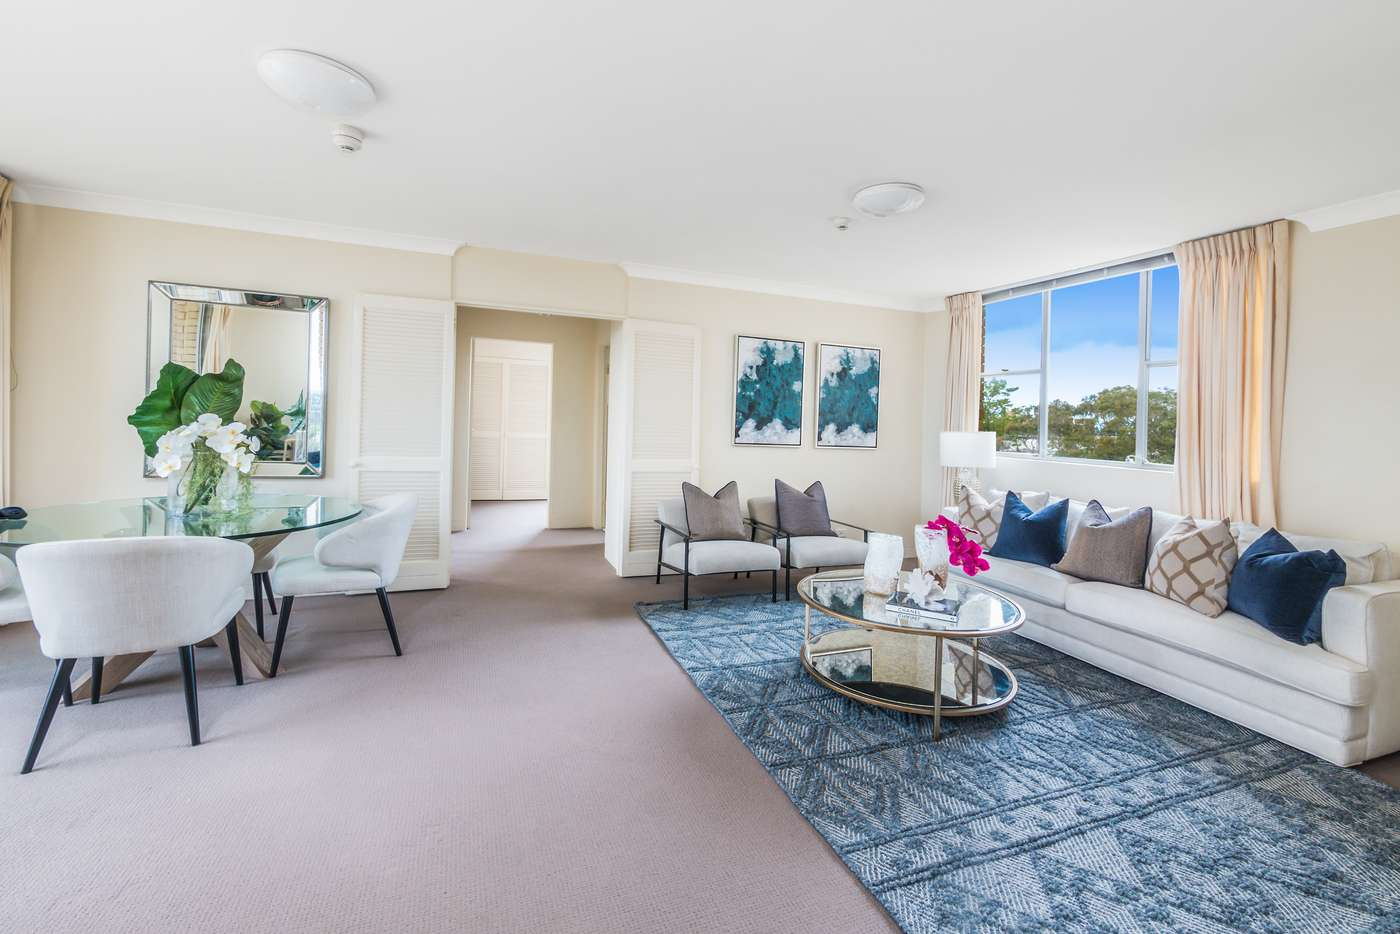 Fifth view of Homely apartment listing, 18/26-32 Gerard Street, Cremorne NSW 2090